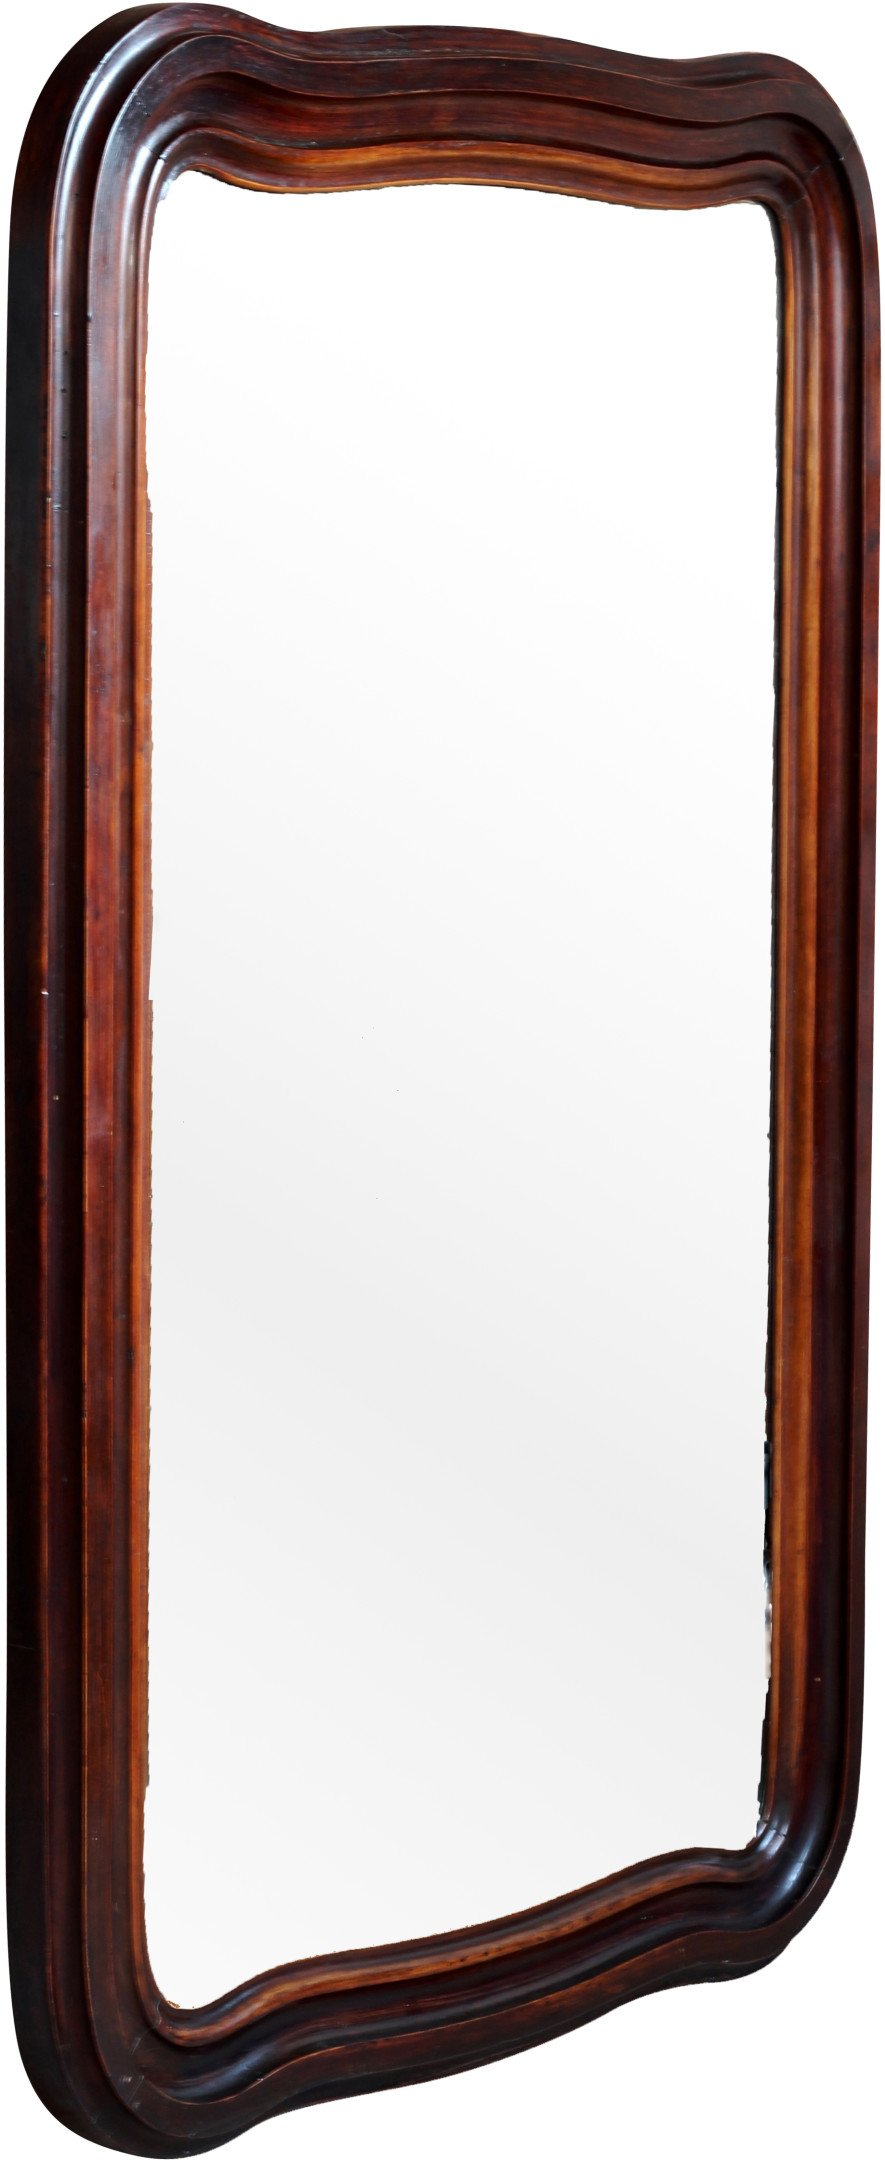 Mirror, early 20th C.